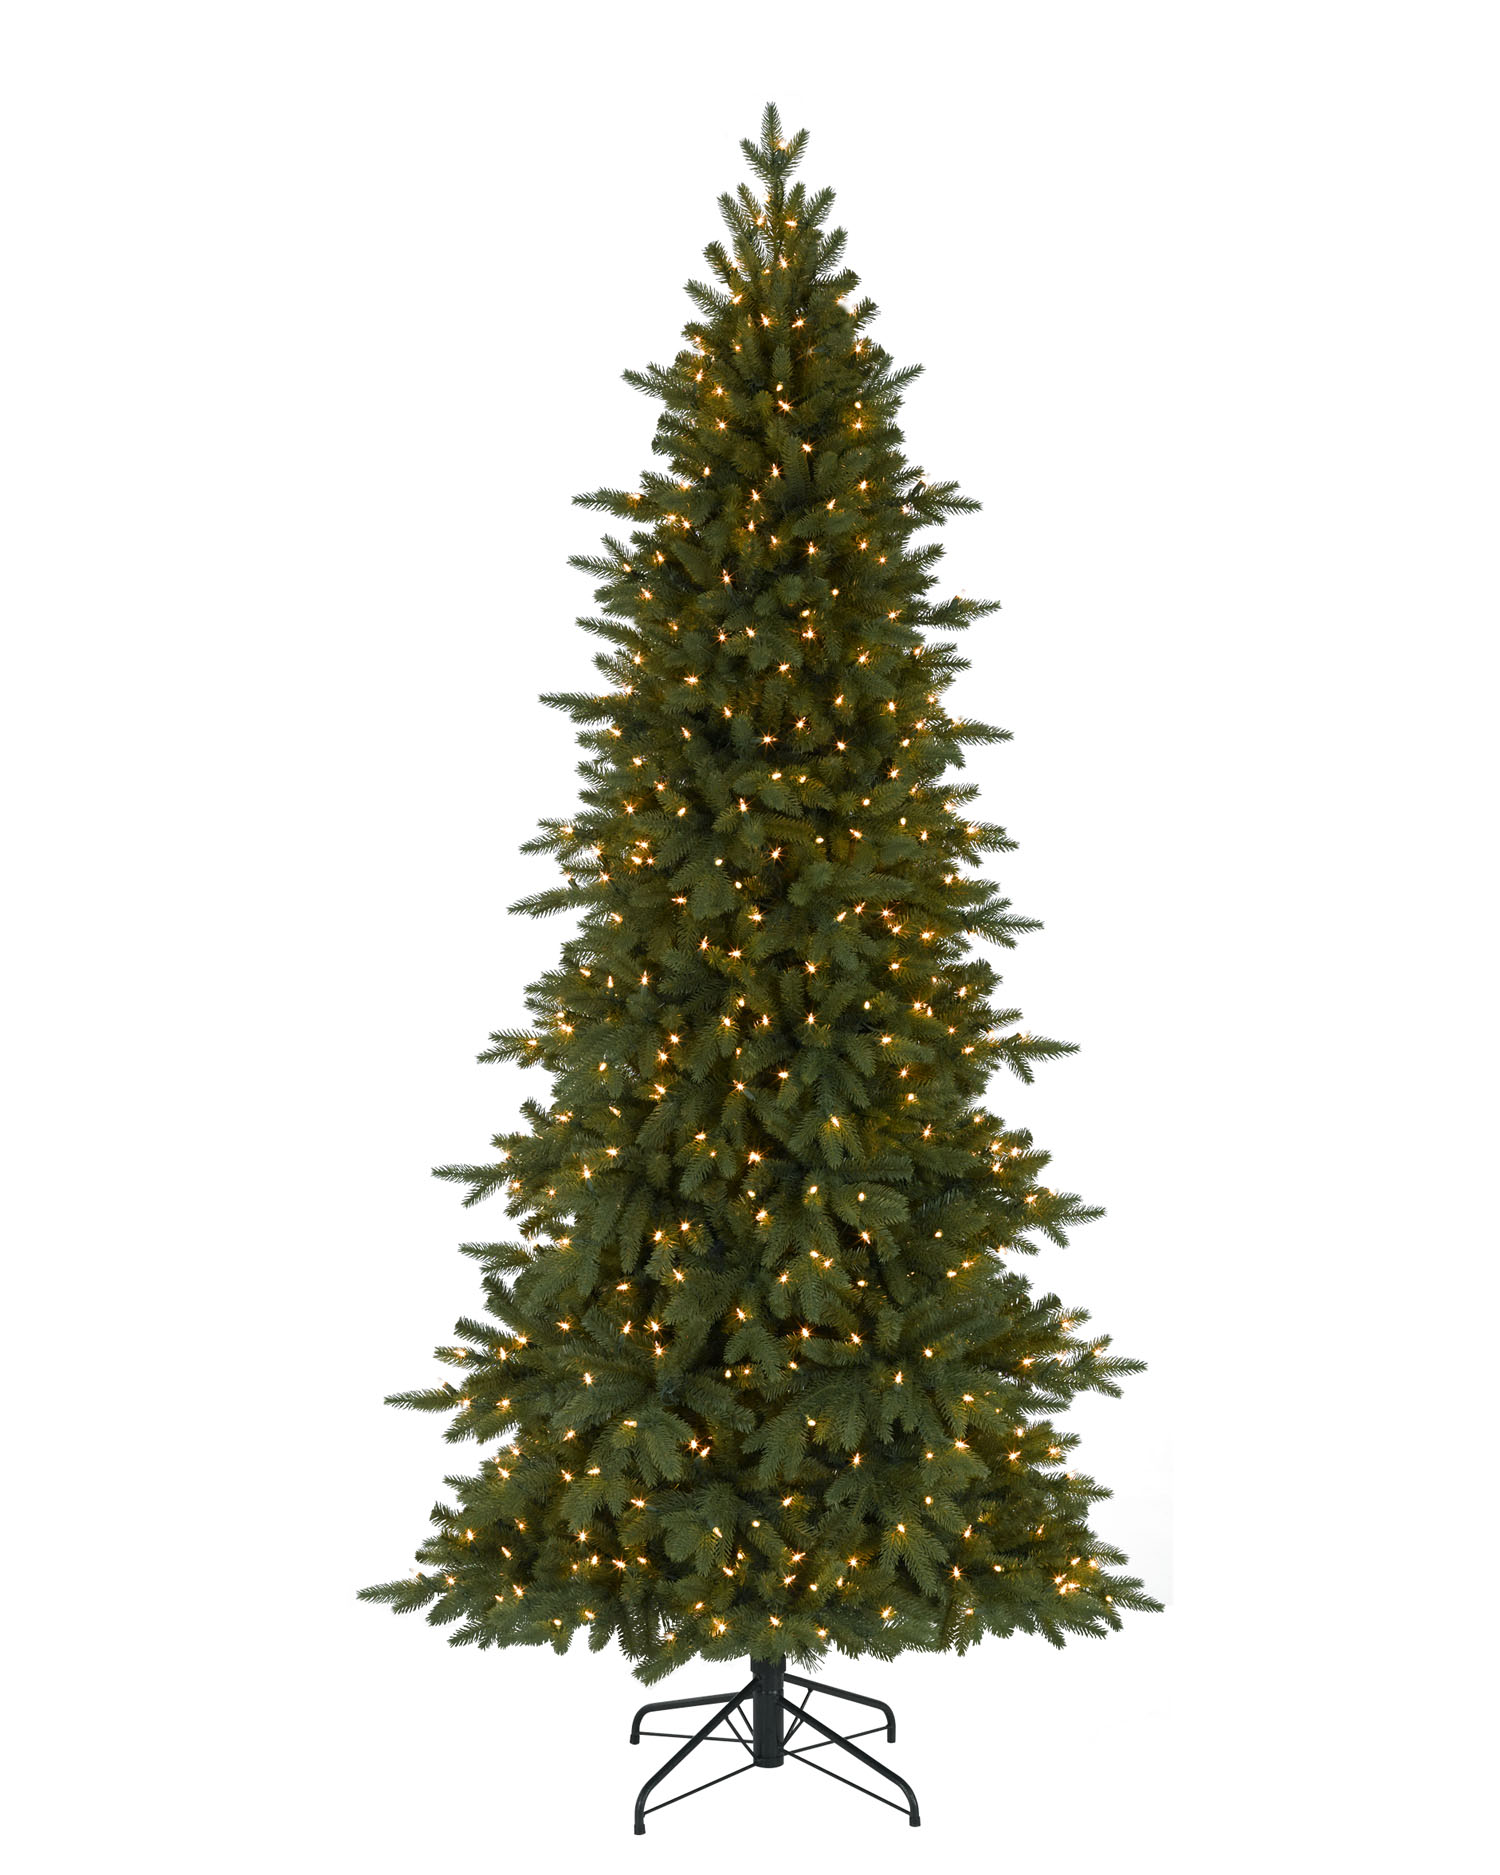 Small artificial christmas trees with led lights - 9 Foot Pre Lit Kennedy Fir Artificial Christmas Tree